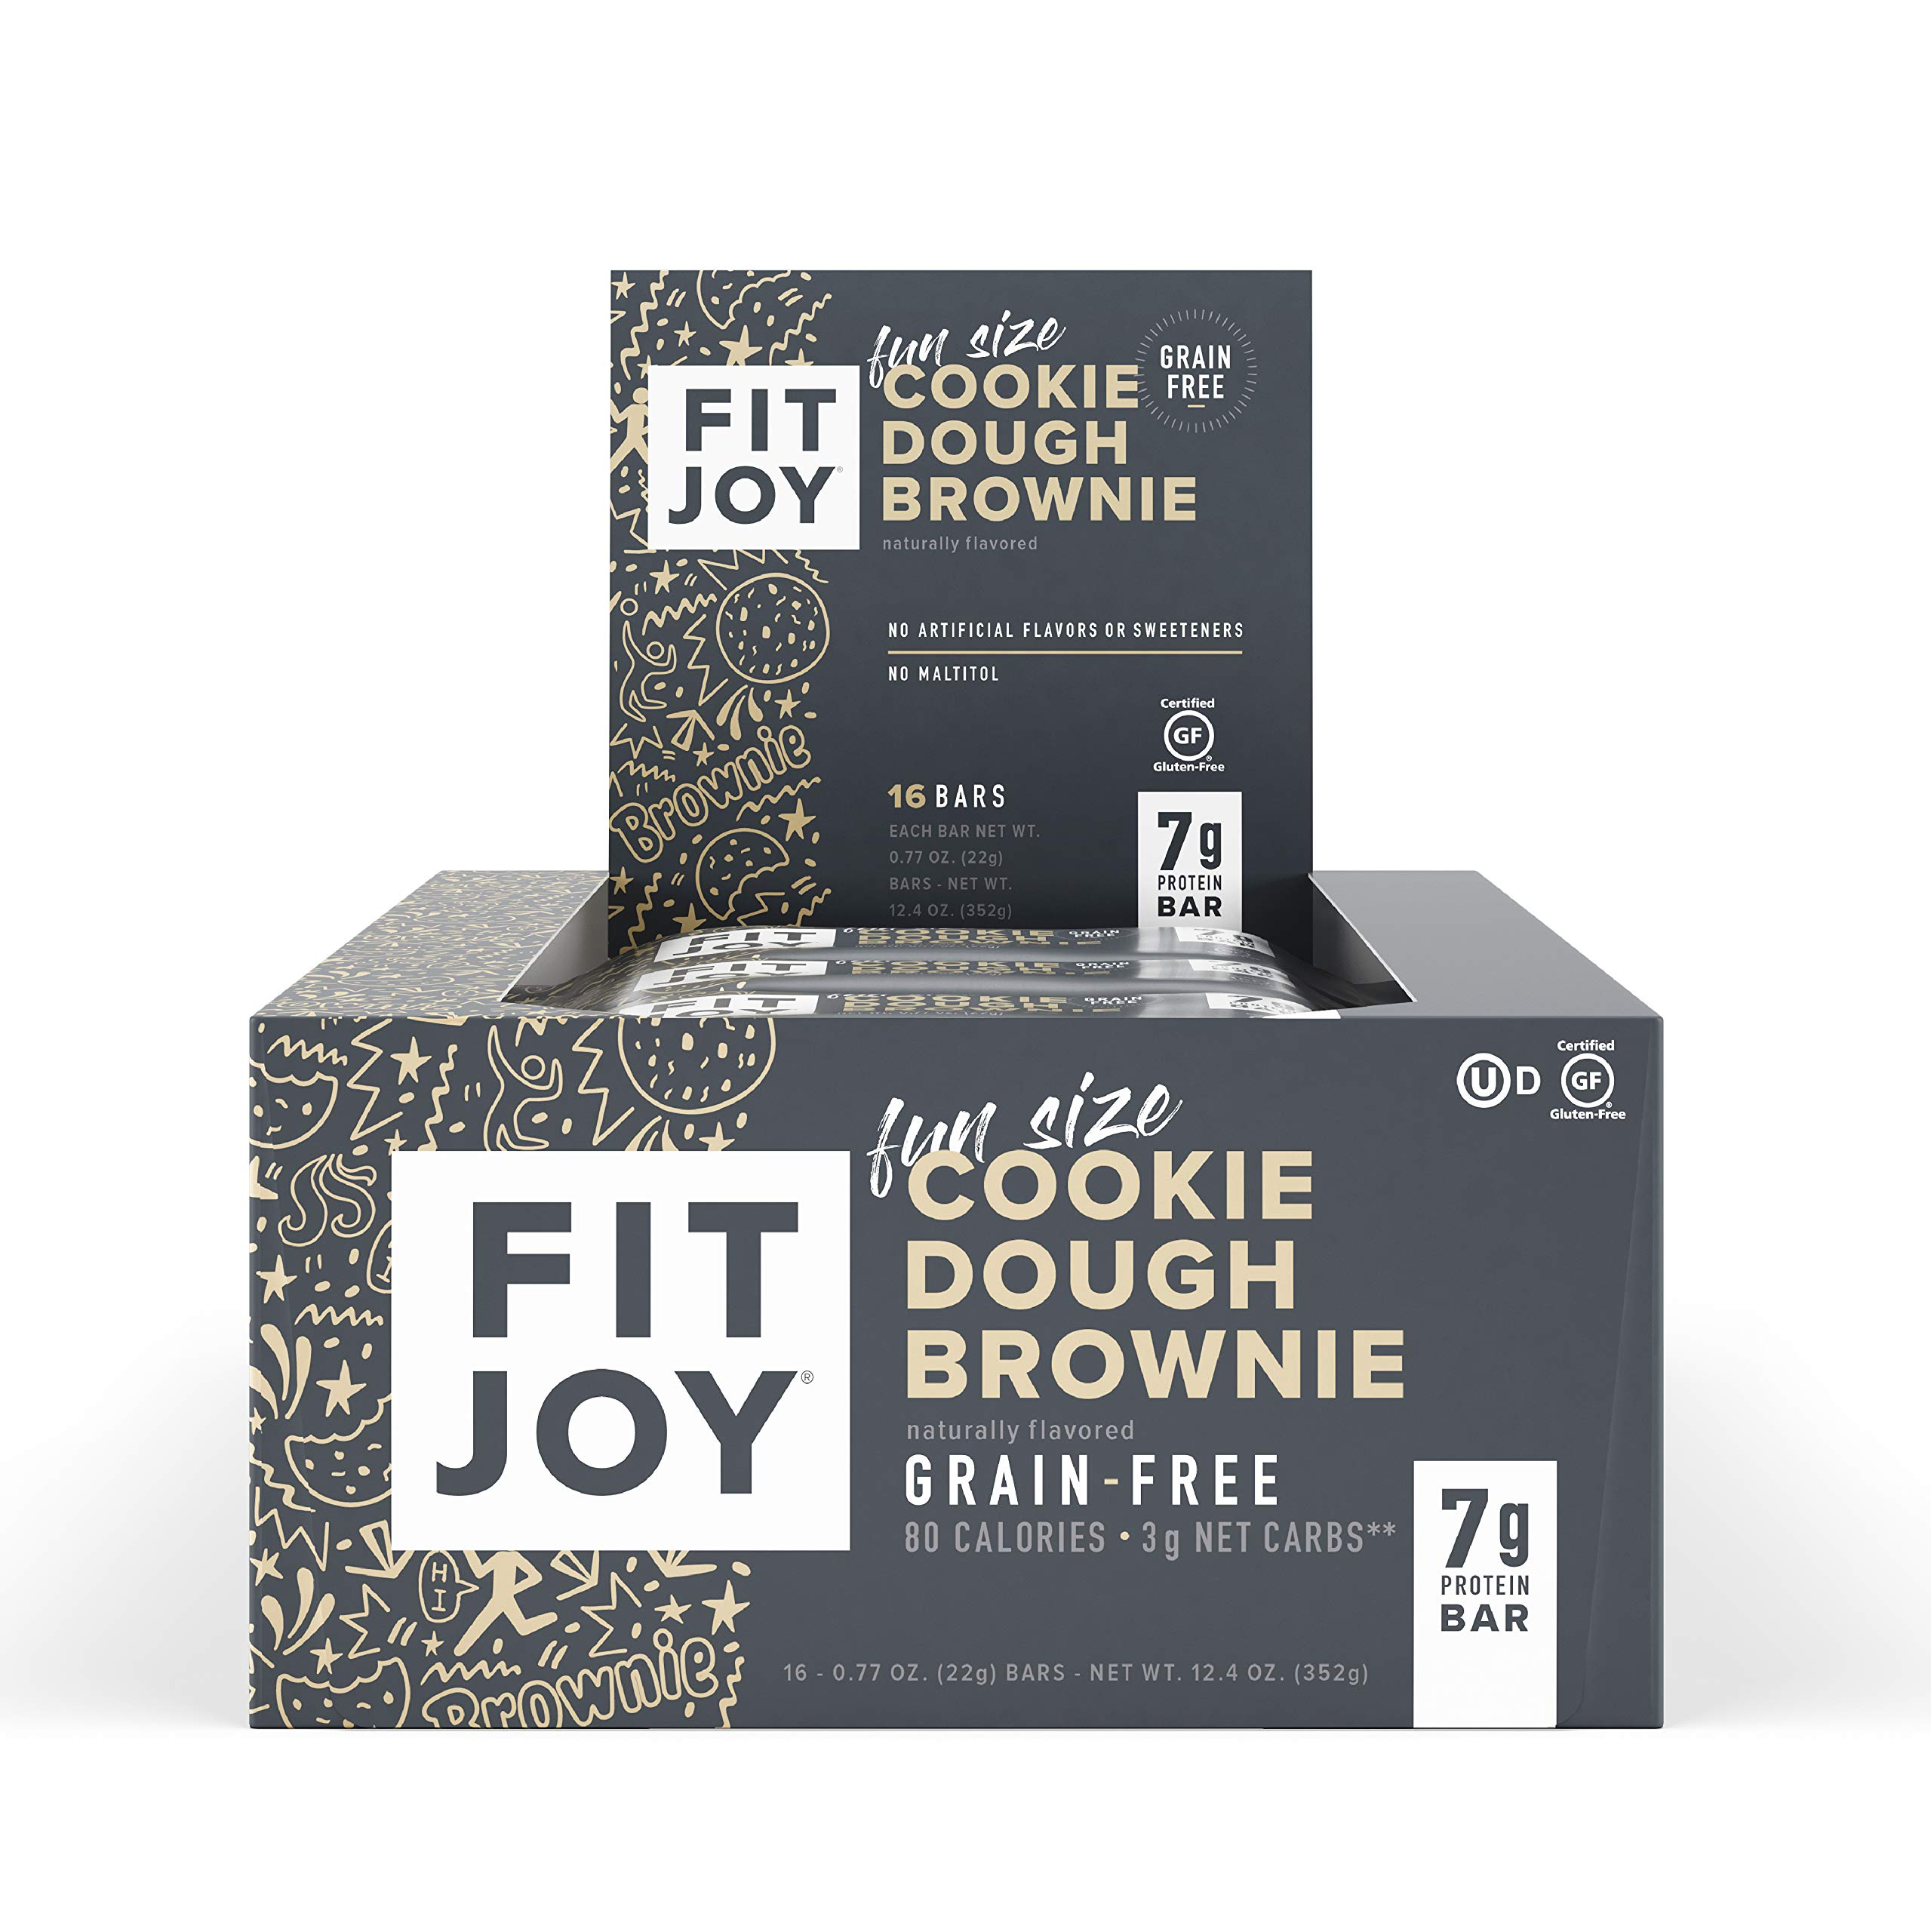 FitJoy Mini Protein Bars, Grain Free, Gluten Free, Low Carb, High Protein Snacks - Keto and Kid Friendly, Low Sugar 6g Protein Bars - Cookie Dough Brownie, 16 Pack of .67oz Fun Size Bars